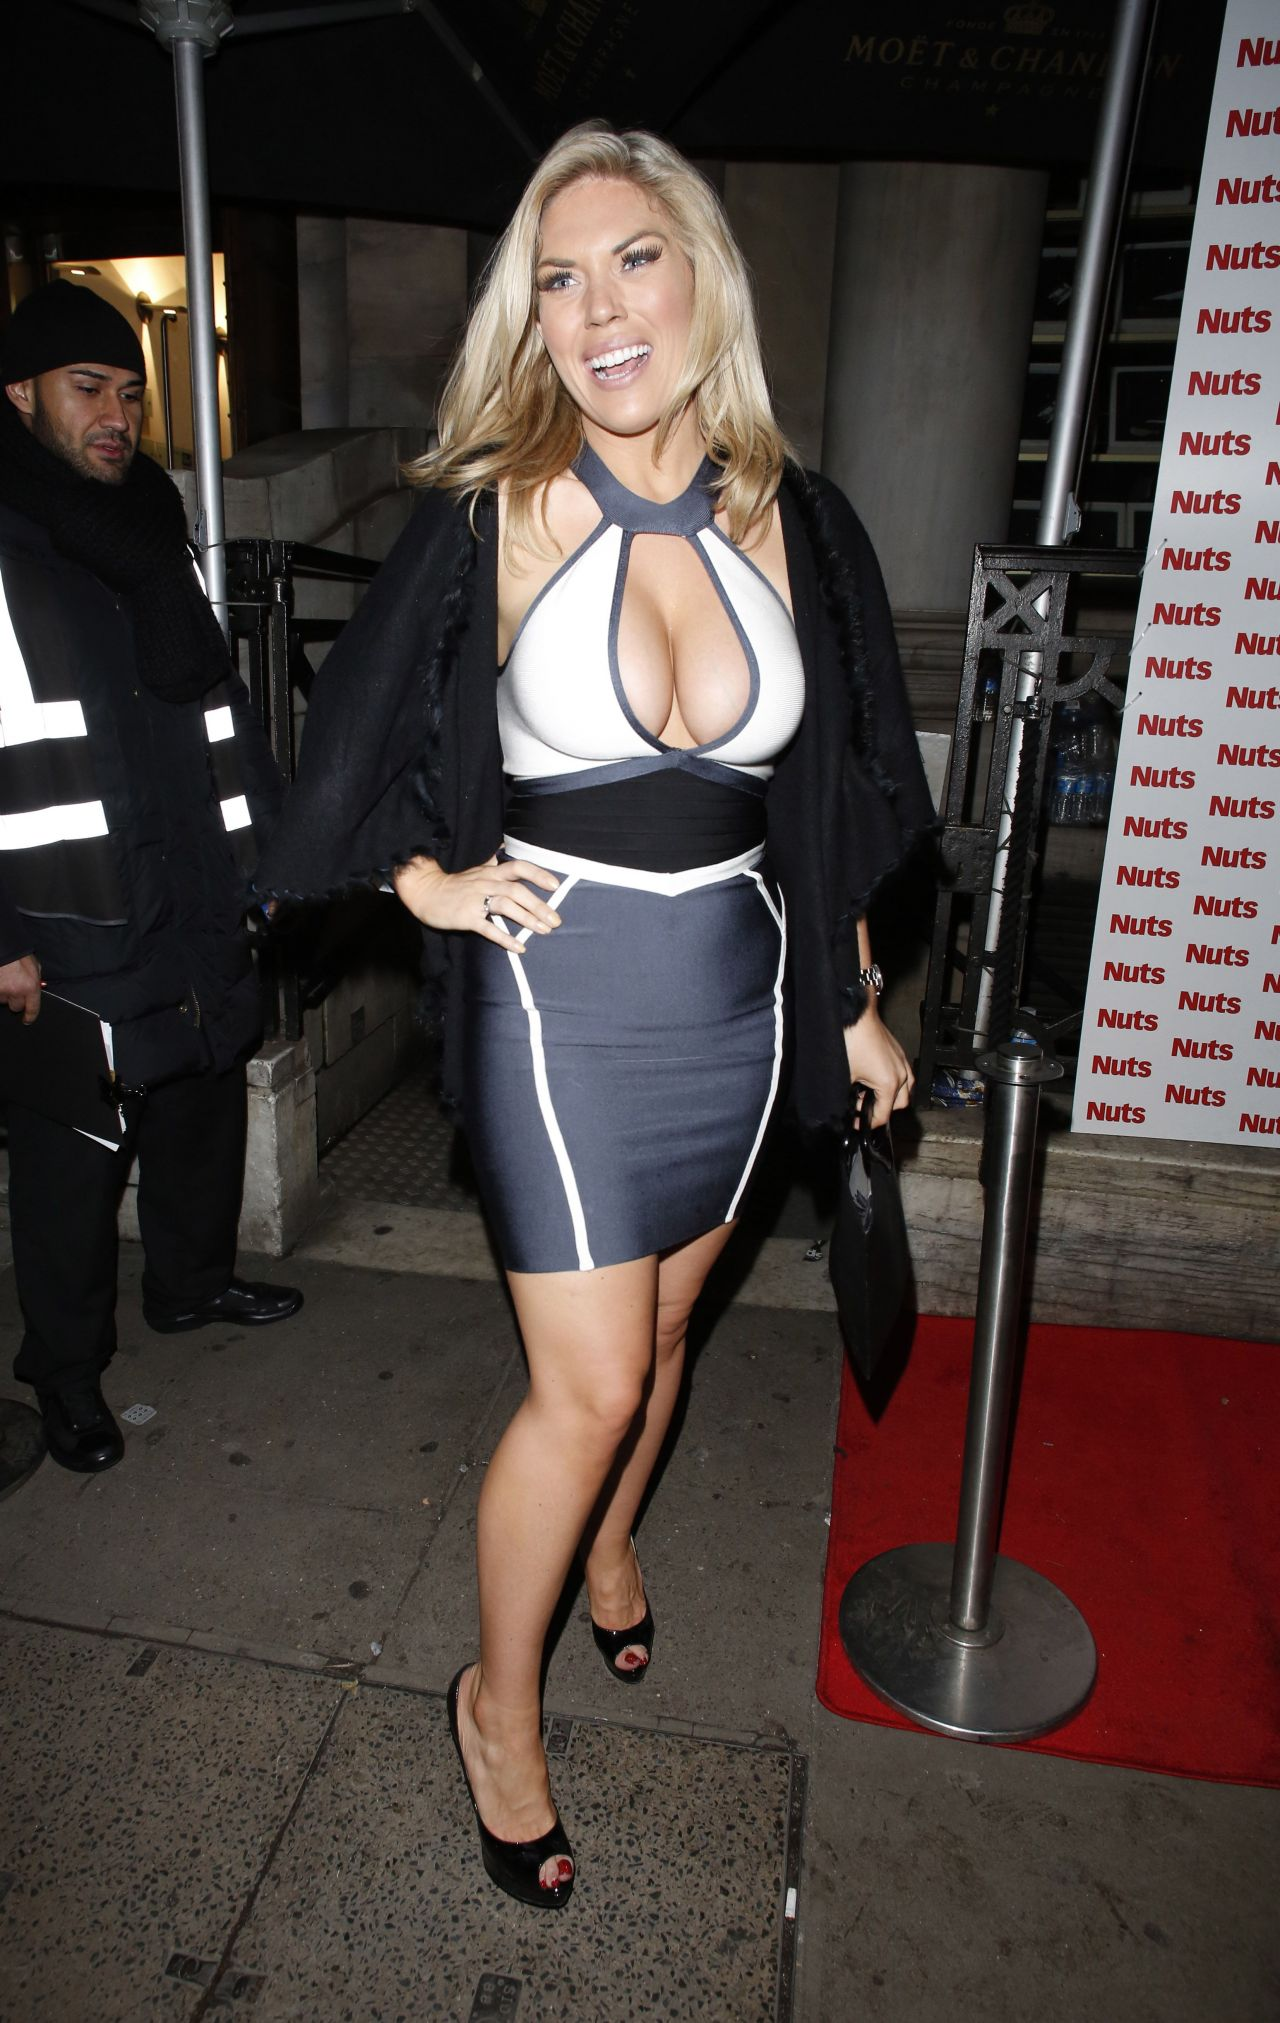 Frankie Essex At Nuts Magazine Party In London January 2014